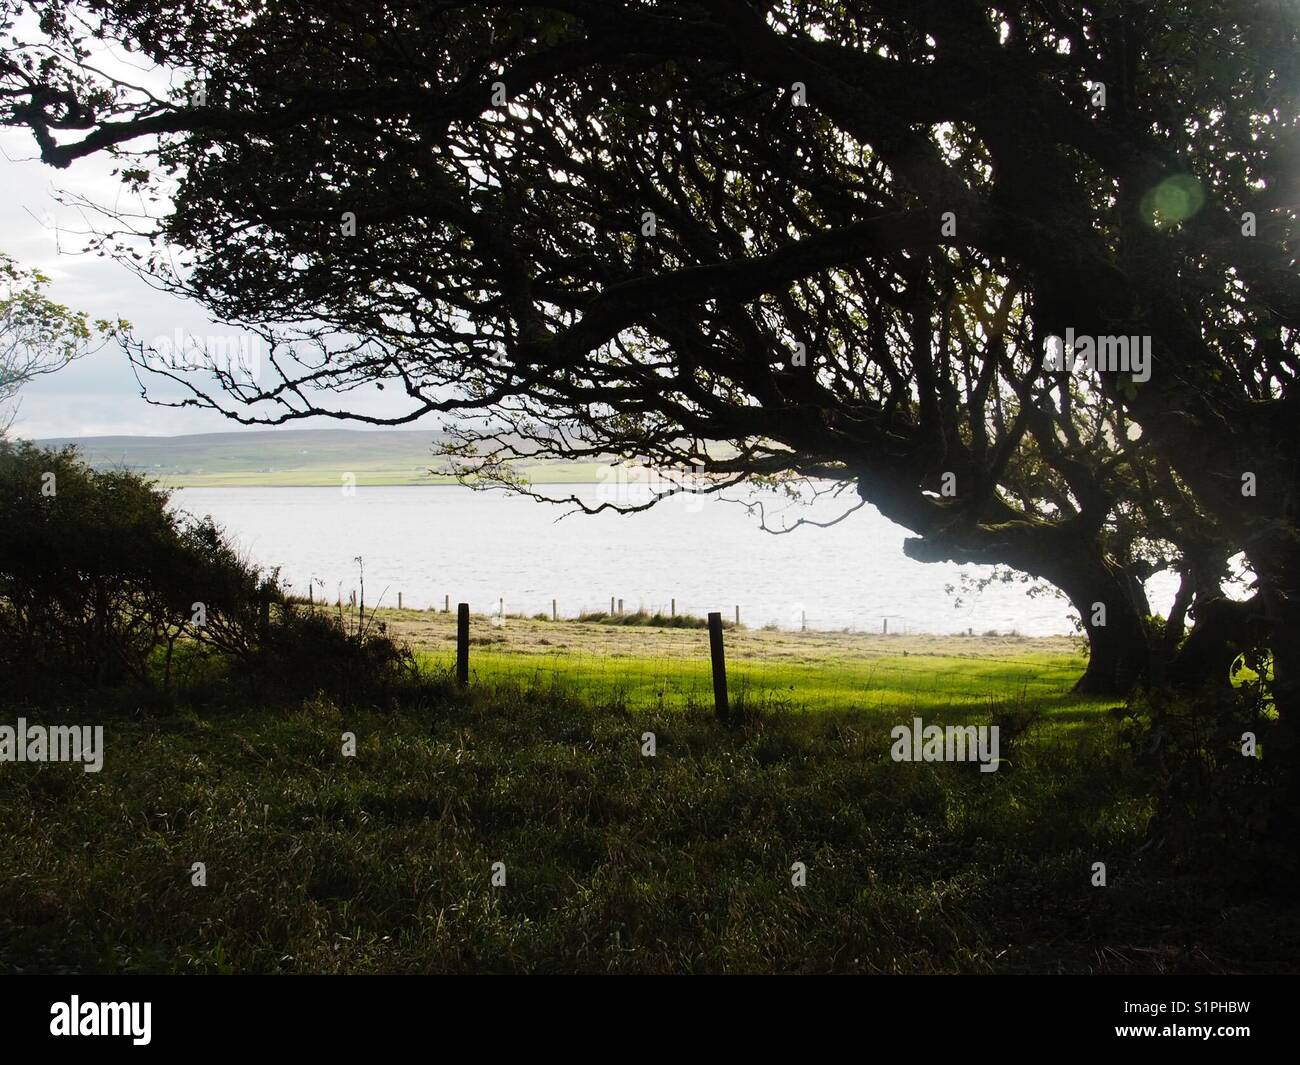 Wind blown tree in garden of old house on the island of Rousay, Orkney. - Stock Image